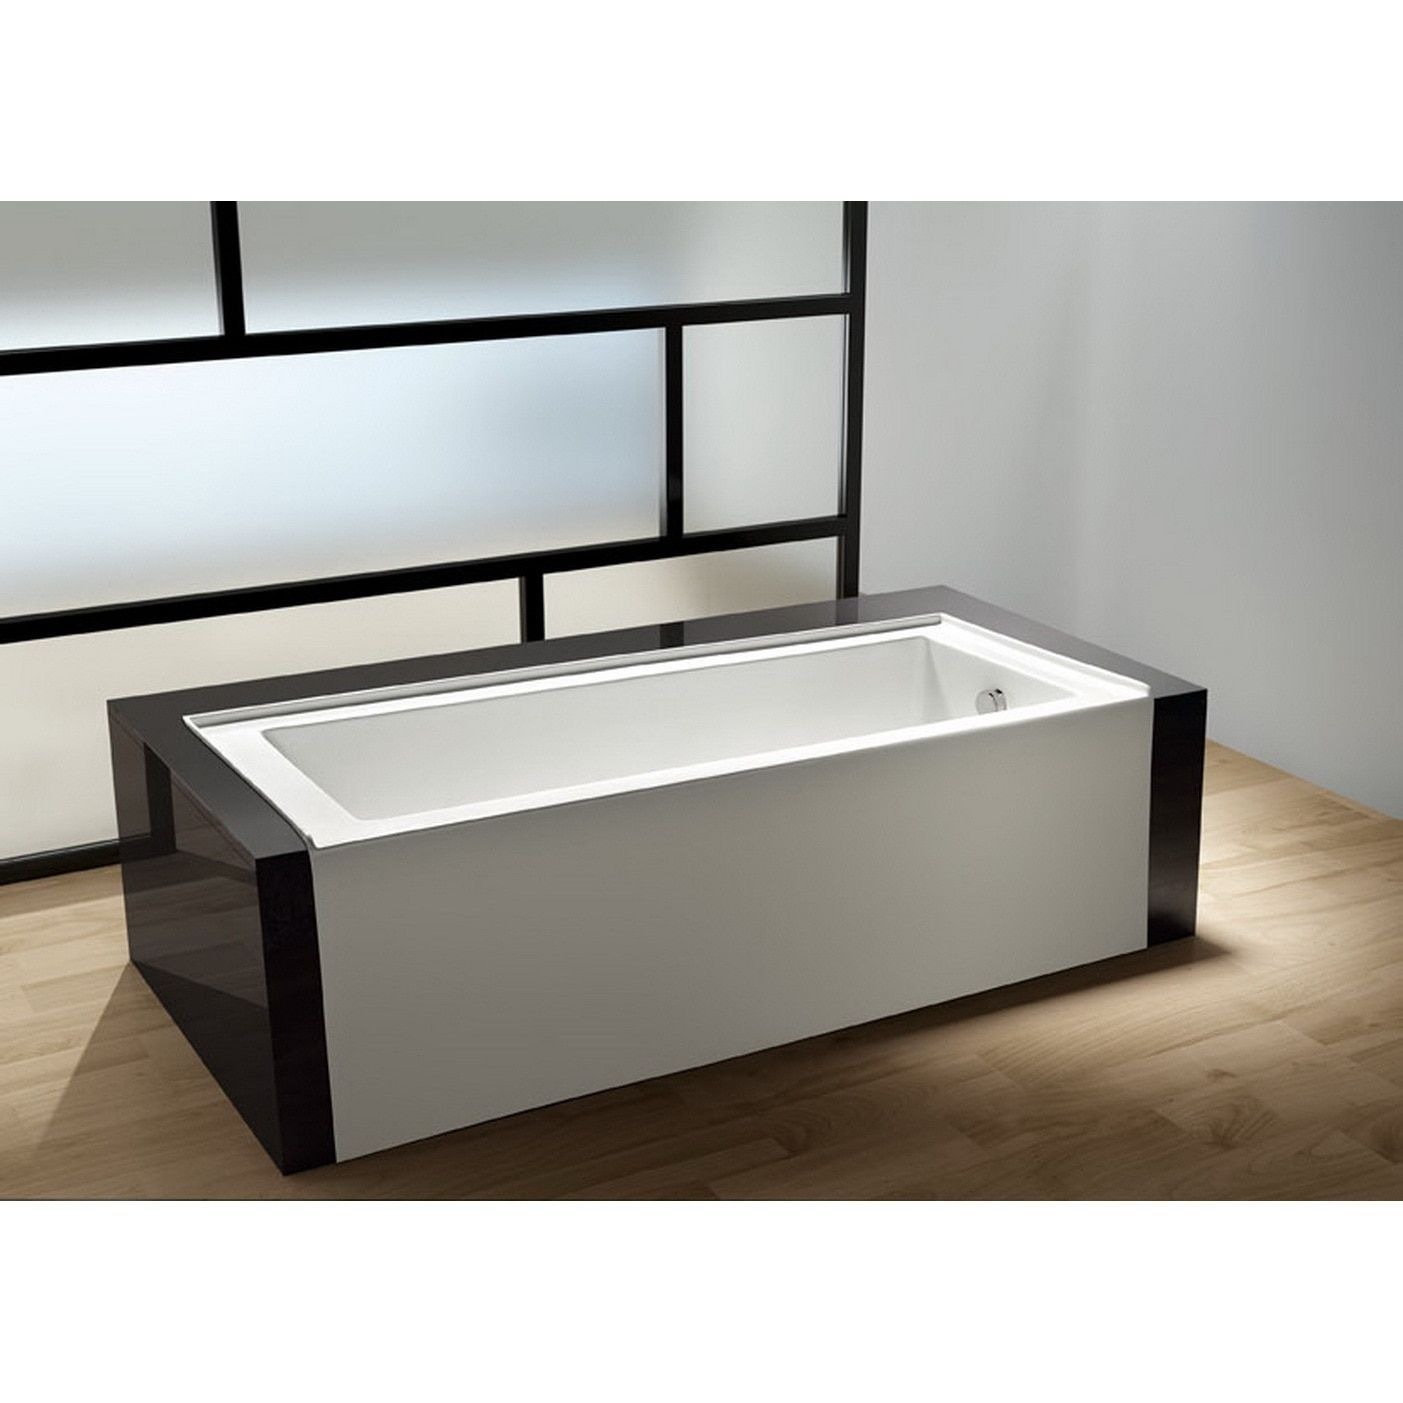 Contemporary soaking tub is a great choice when looking for a drop ...